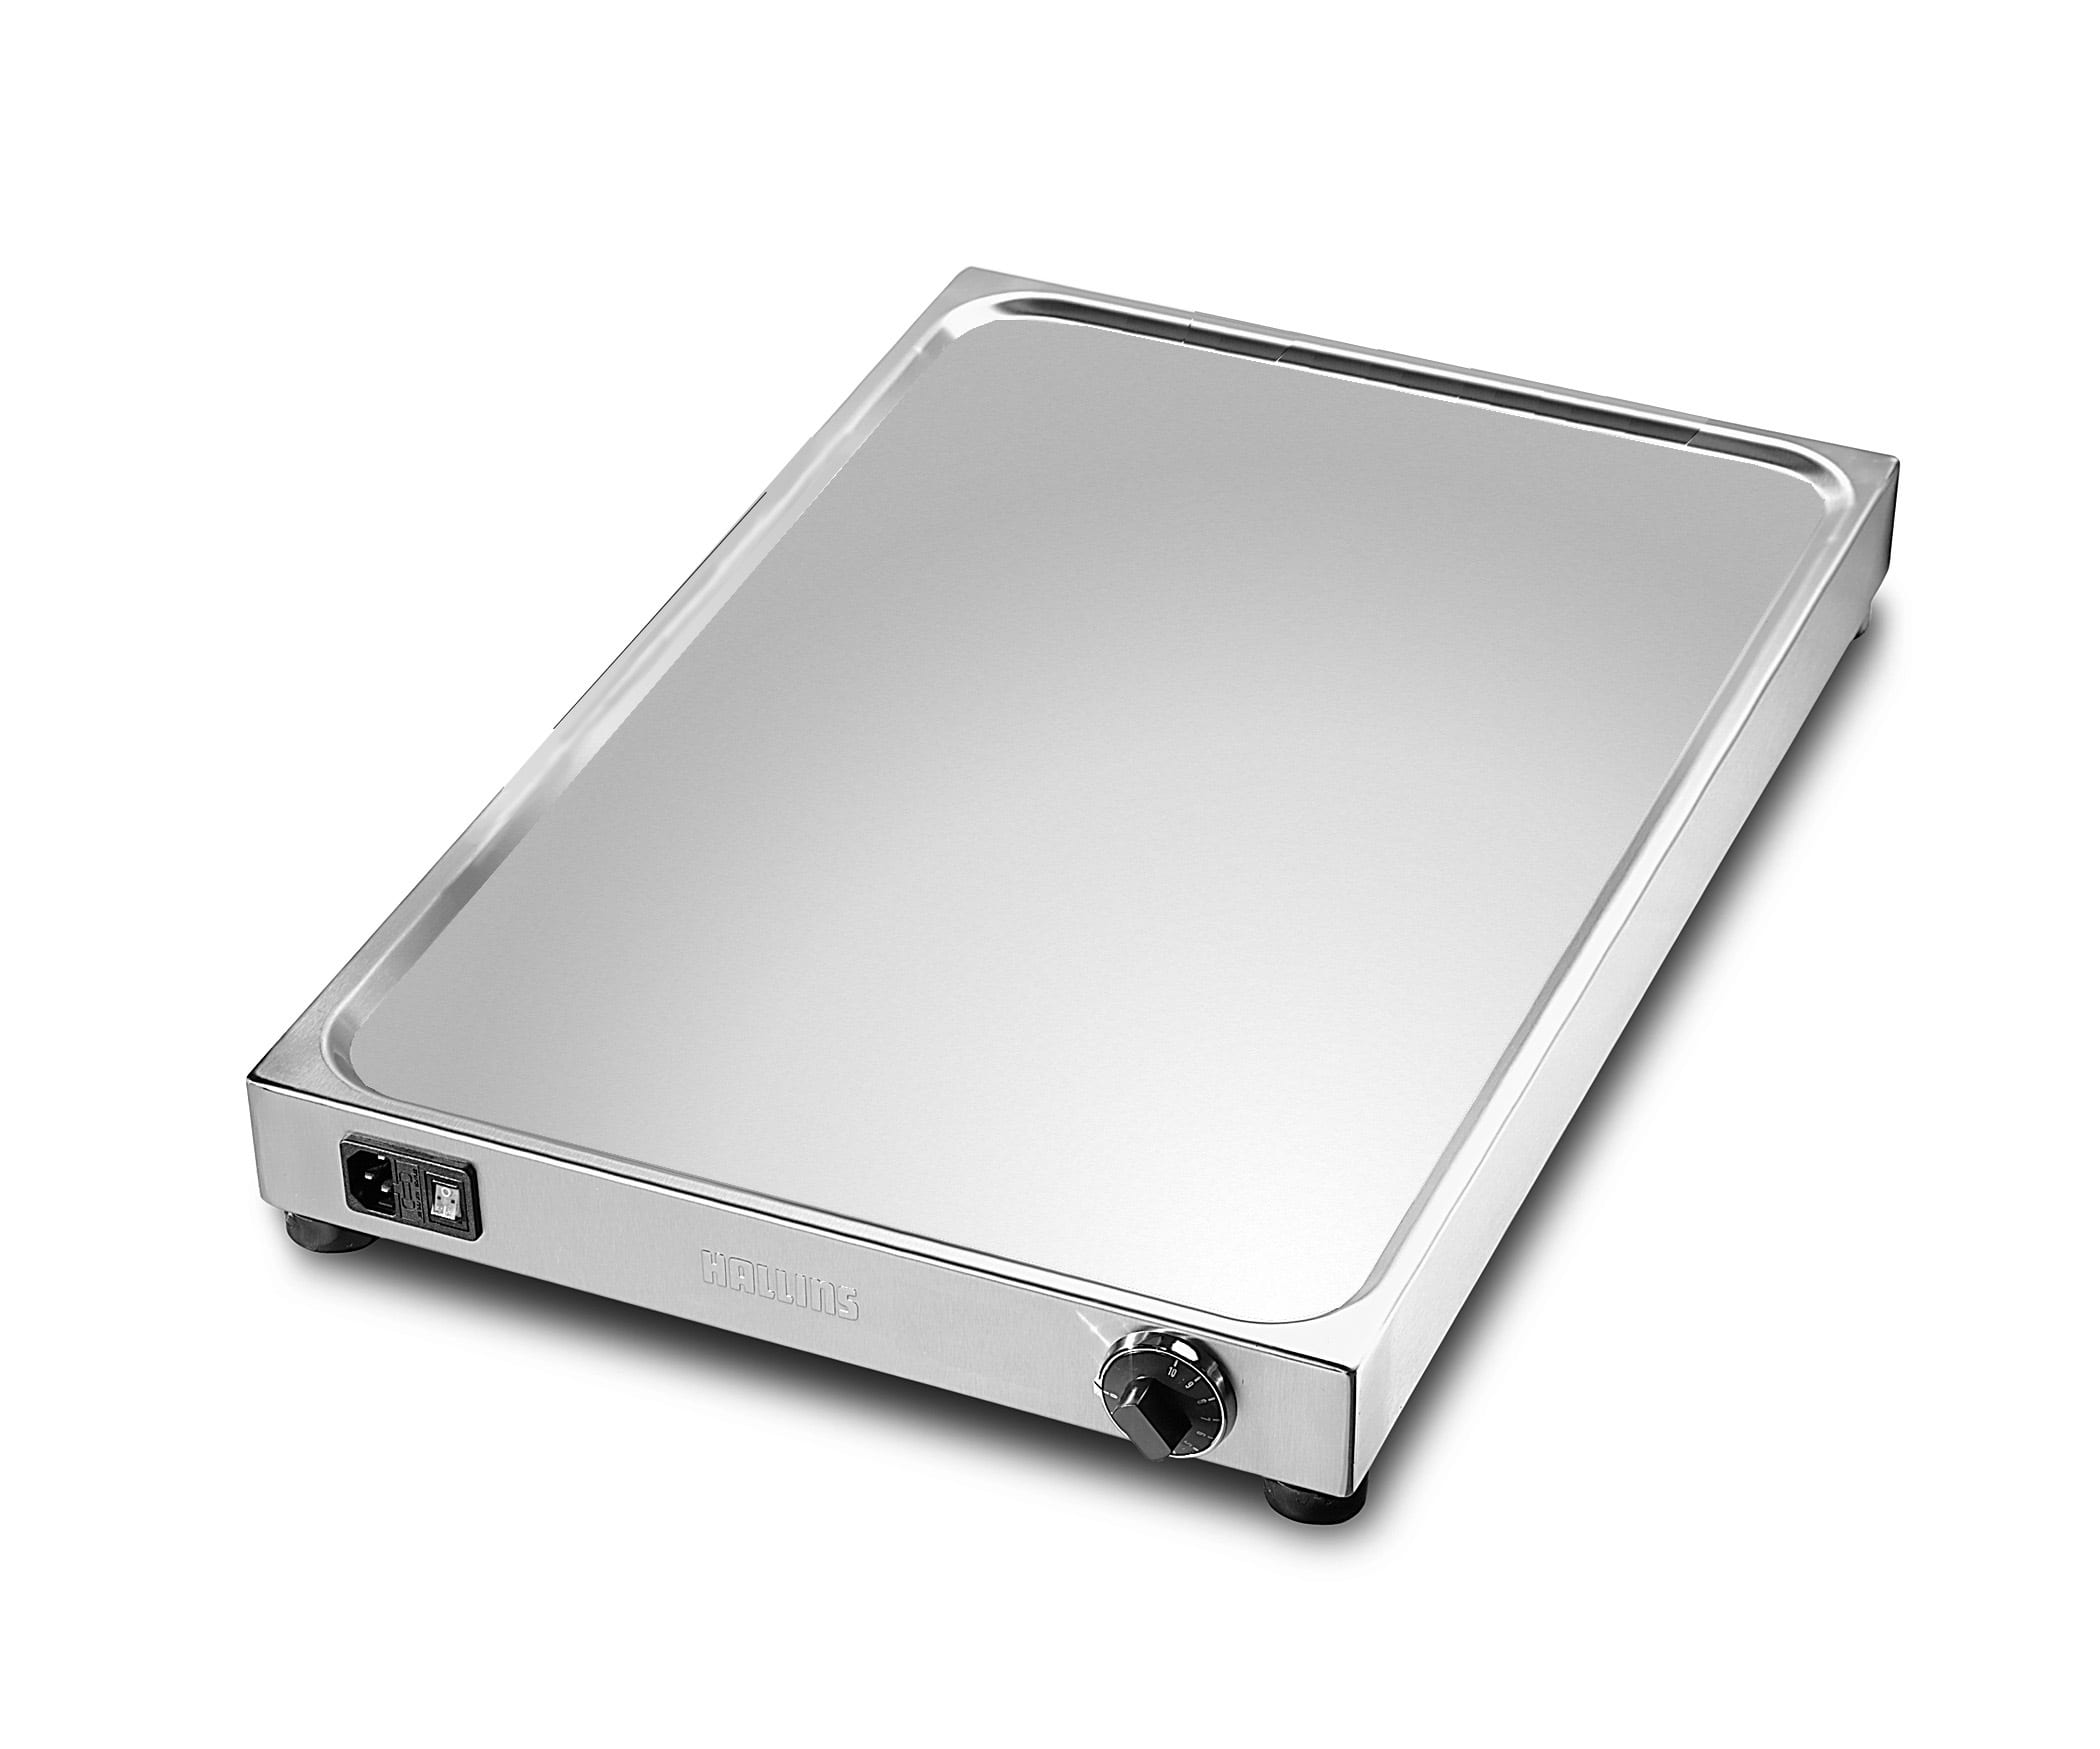 Hot Plate Image